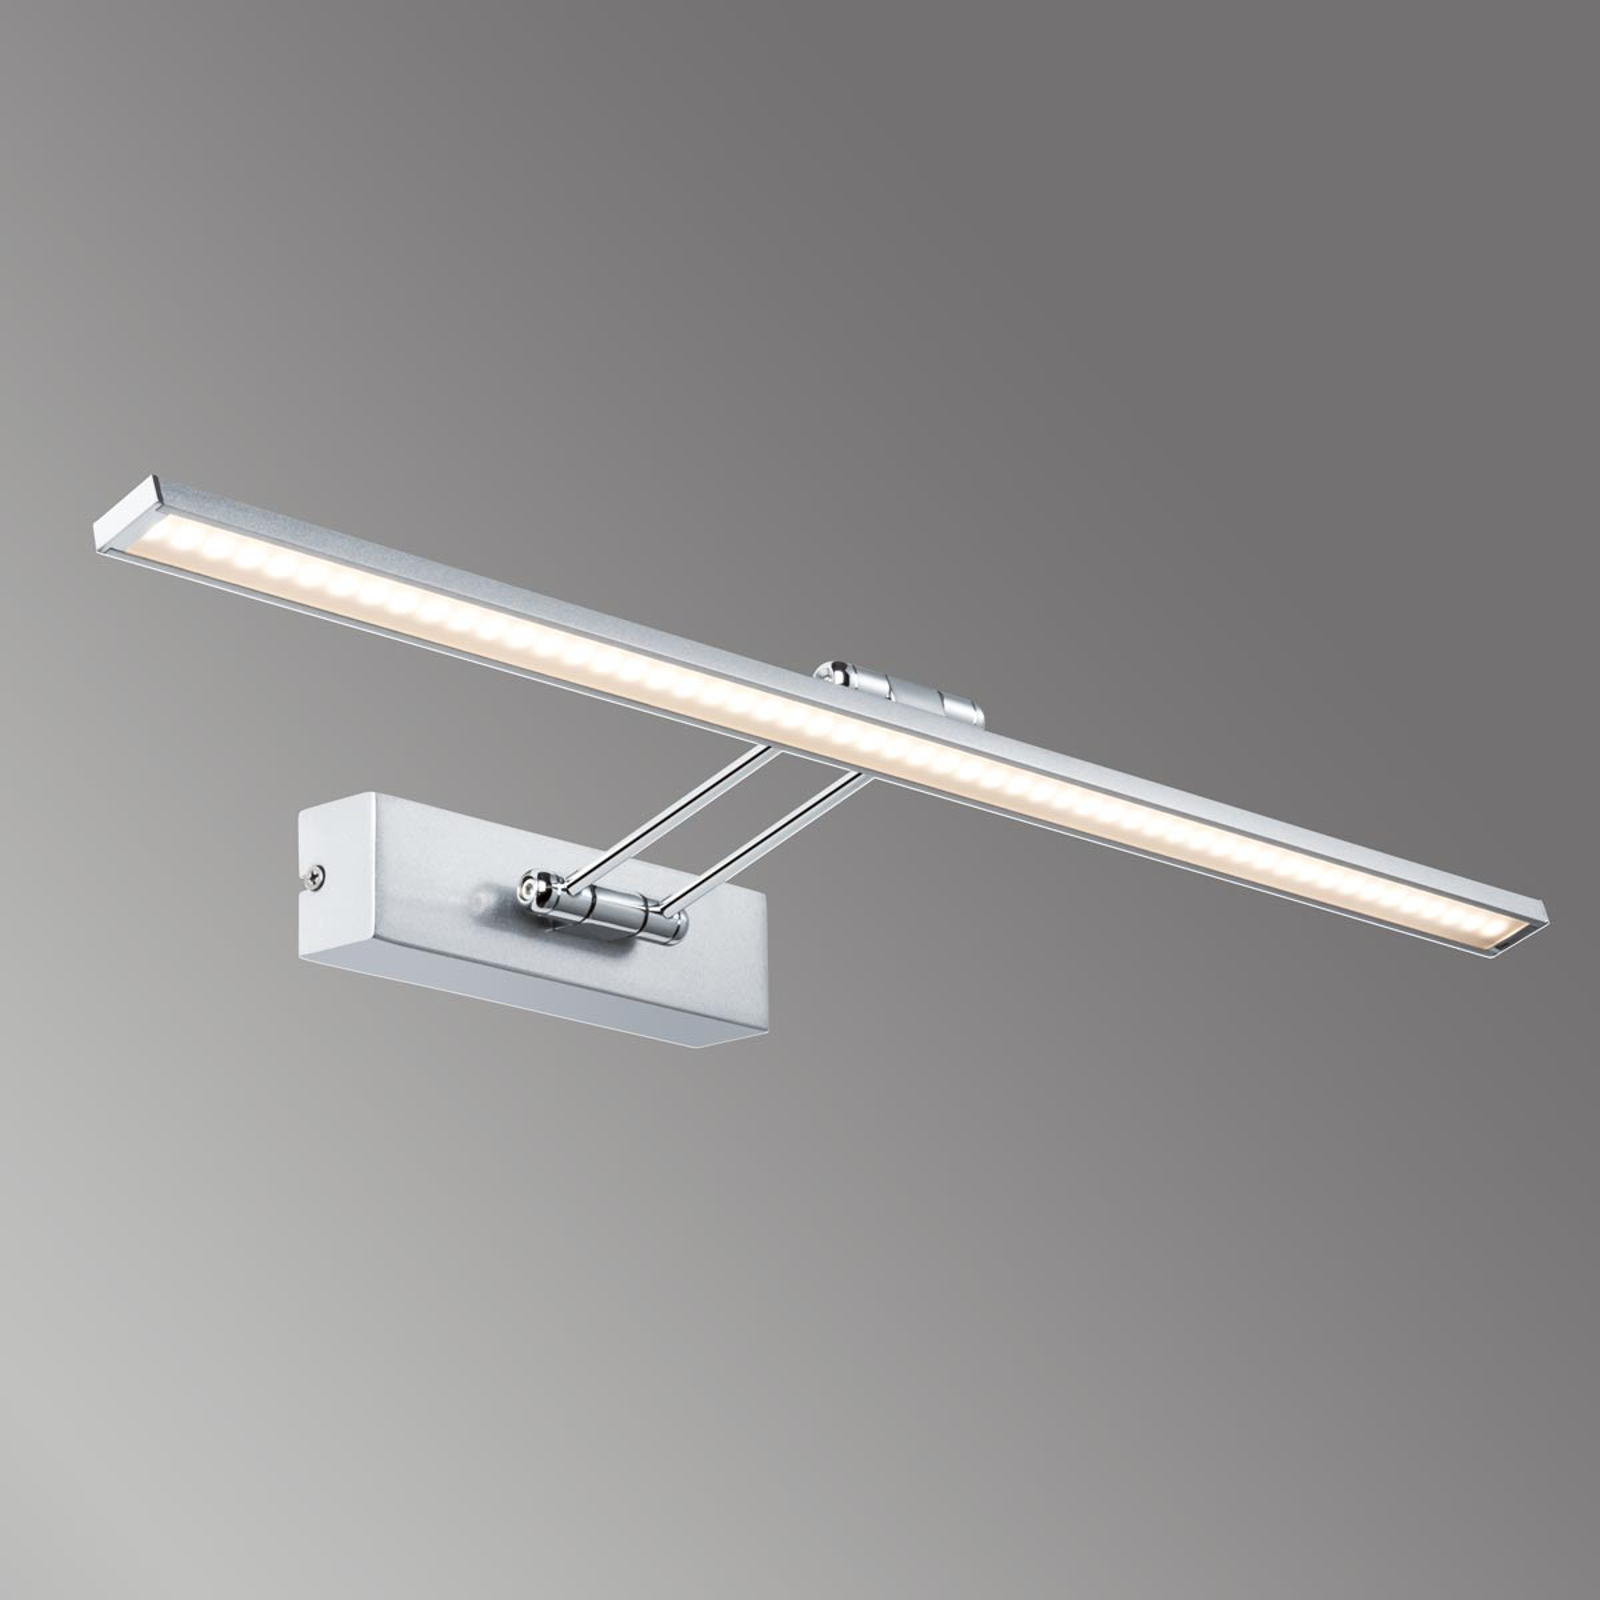 Applique LED Galeria Beam Sixty, nickel